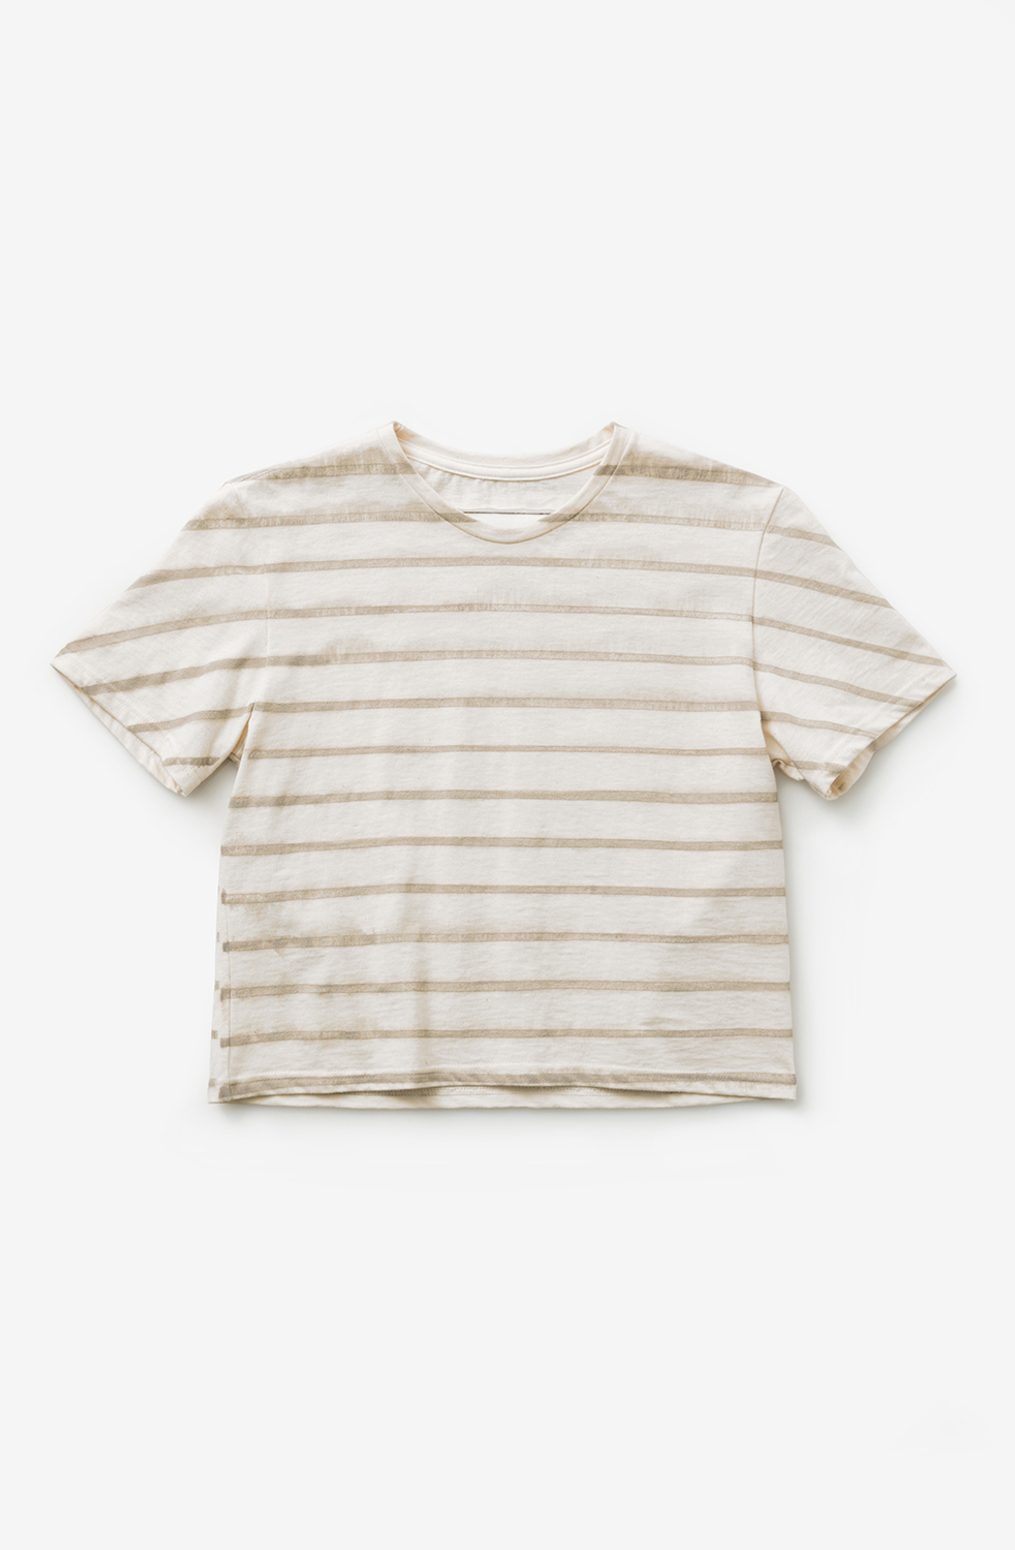 Alabama chanin cropped womens cotton tee stripes 1